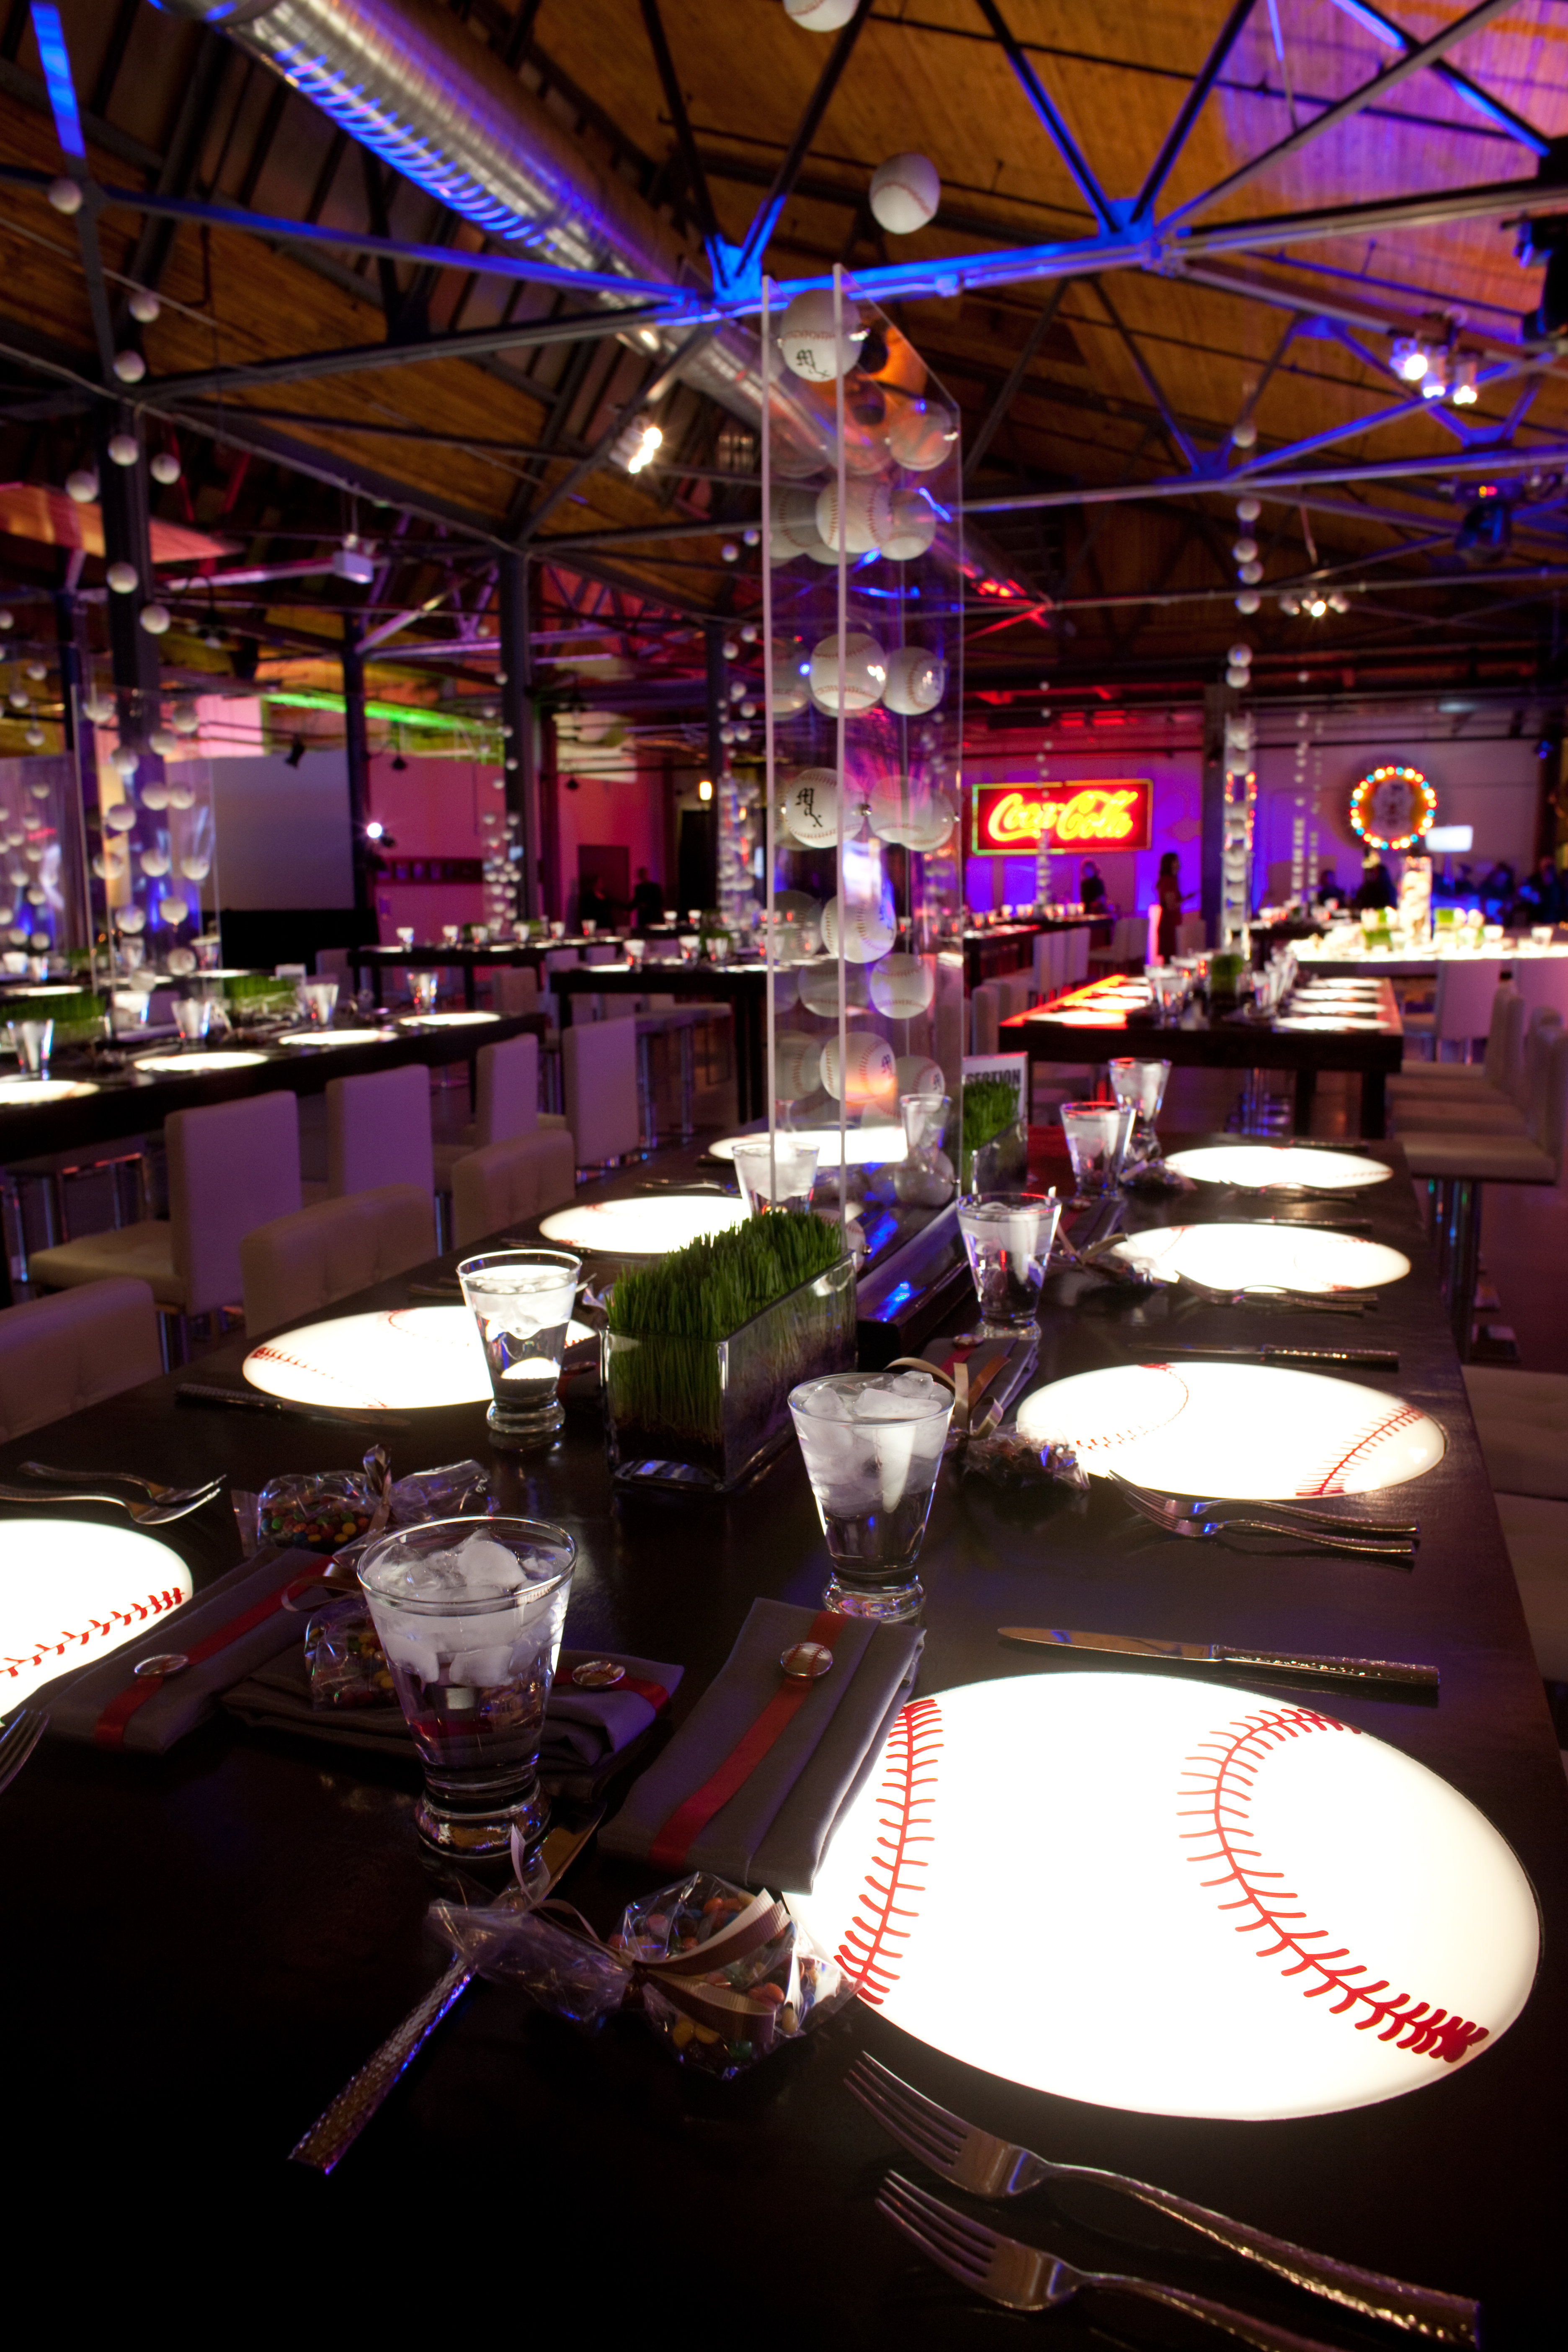 Major League Baseball Themed Bar Mitzvah - Event Creative